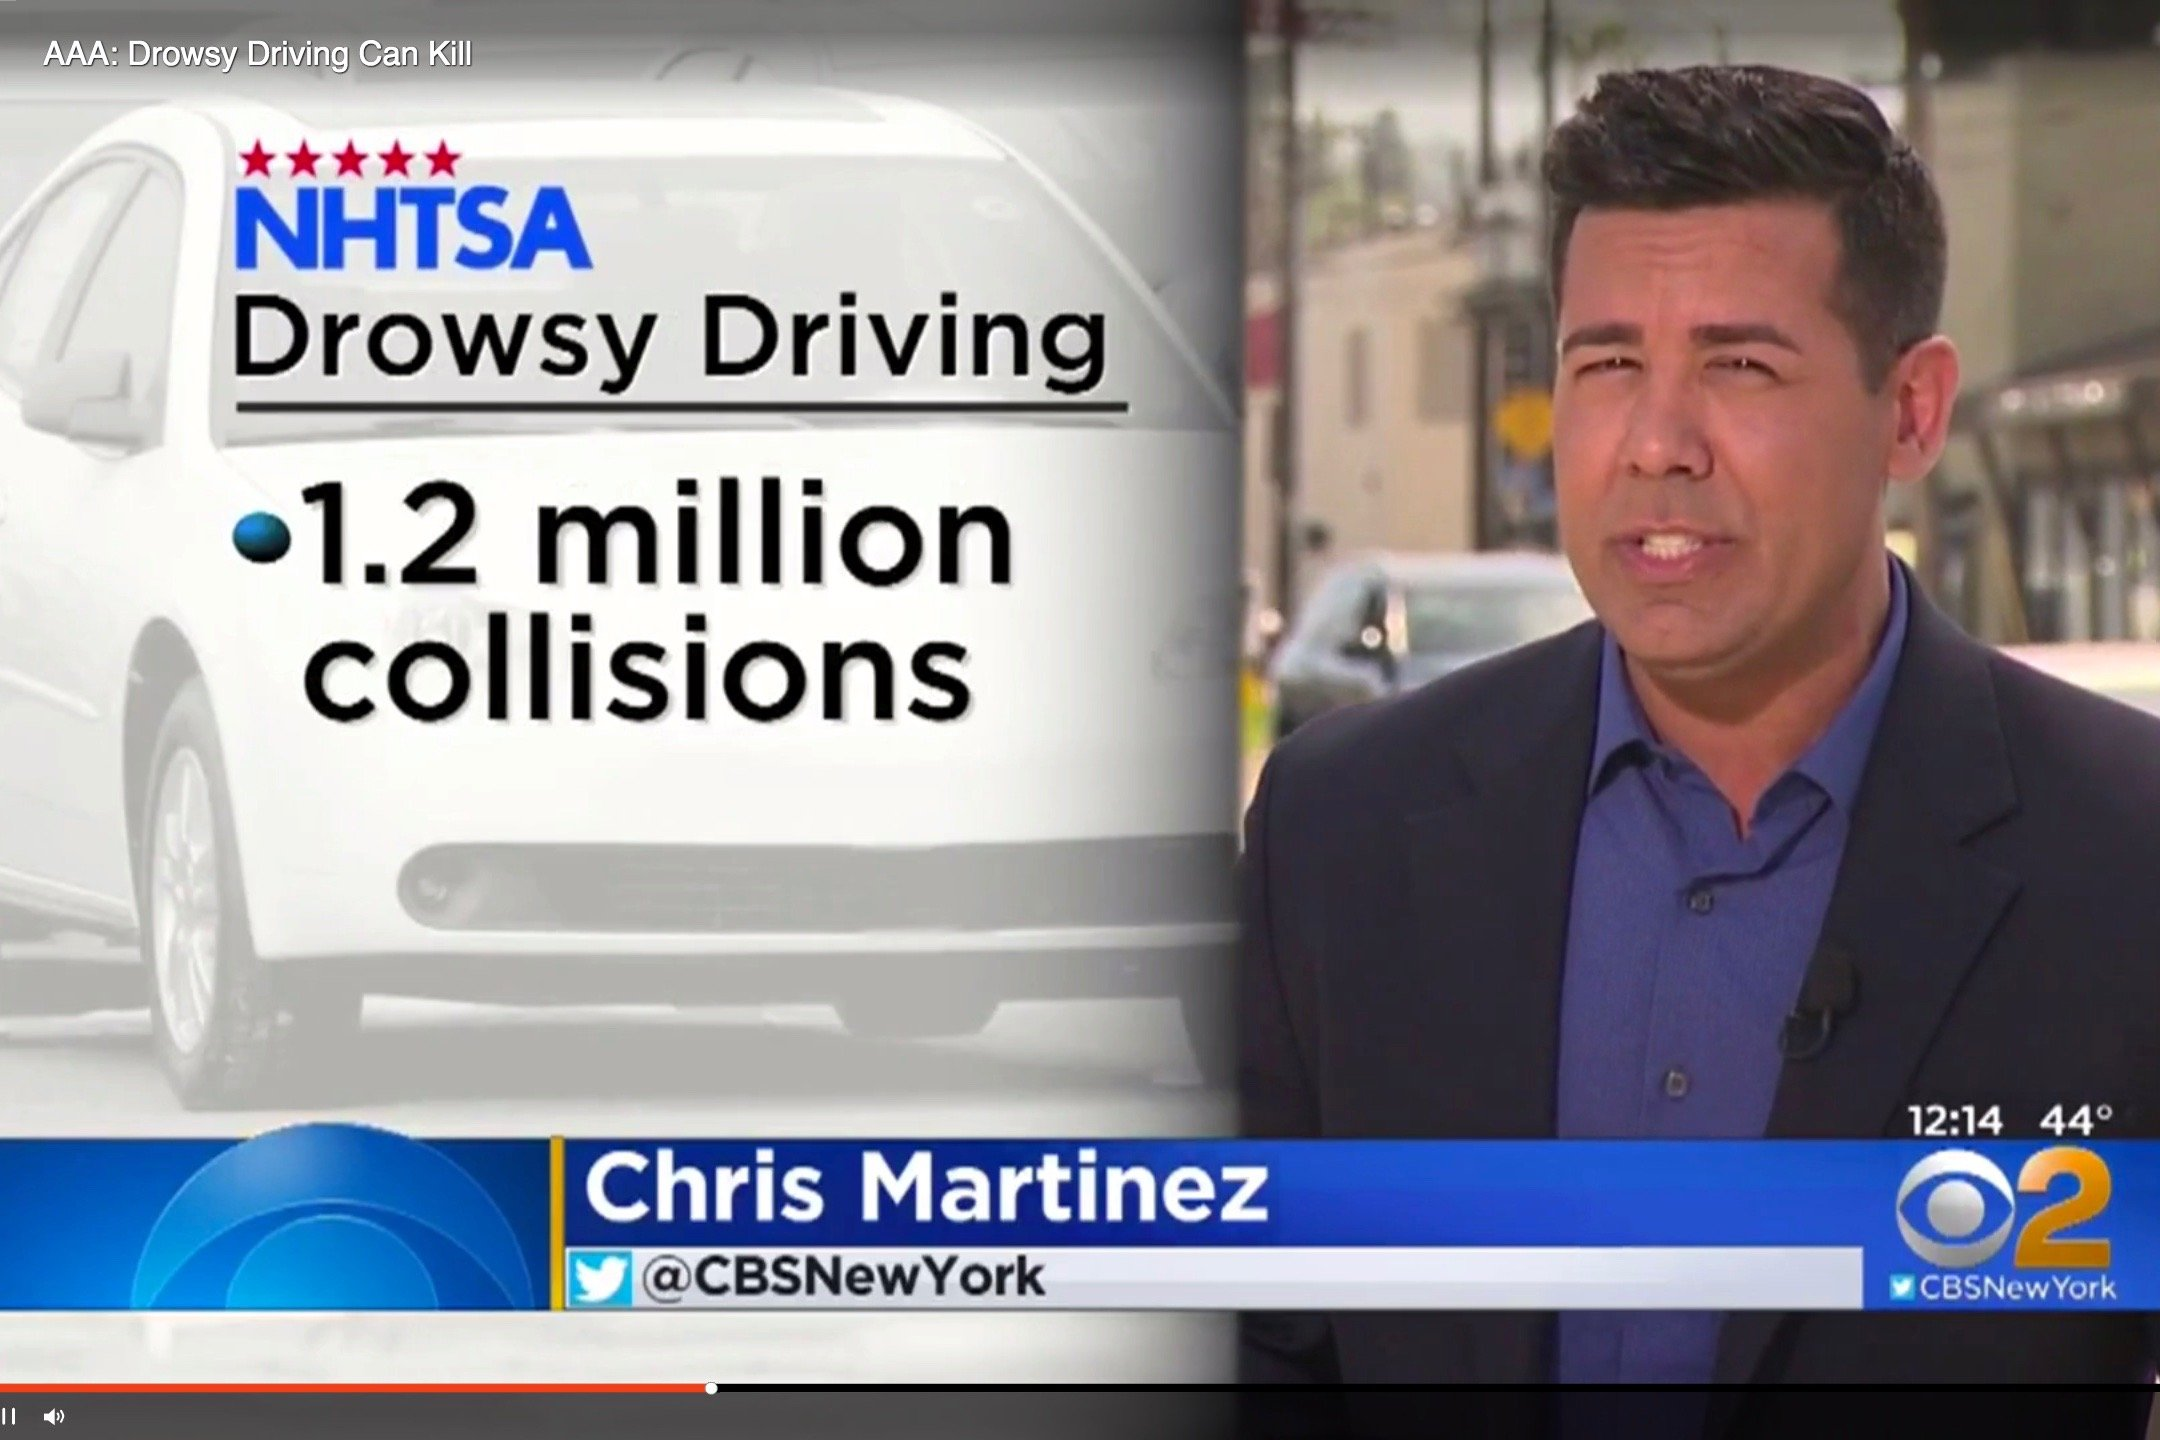 The Dangers of Drowsy Driving